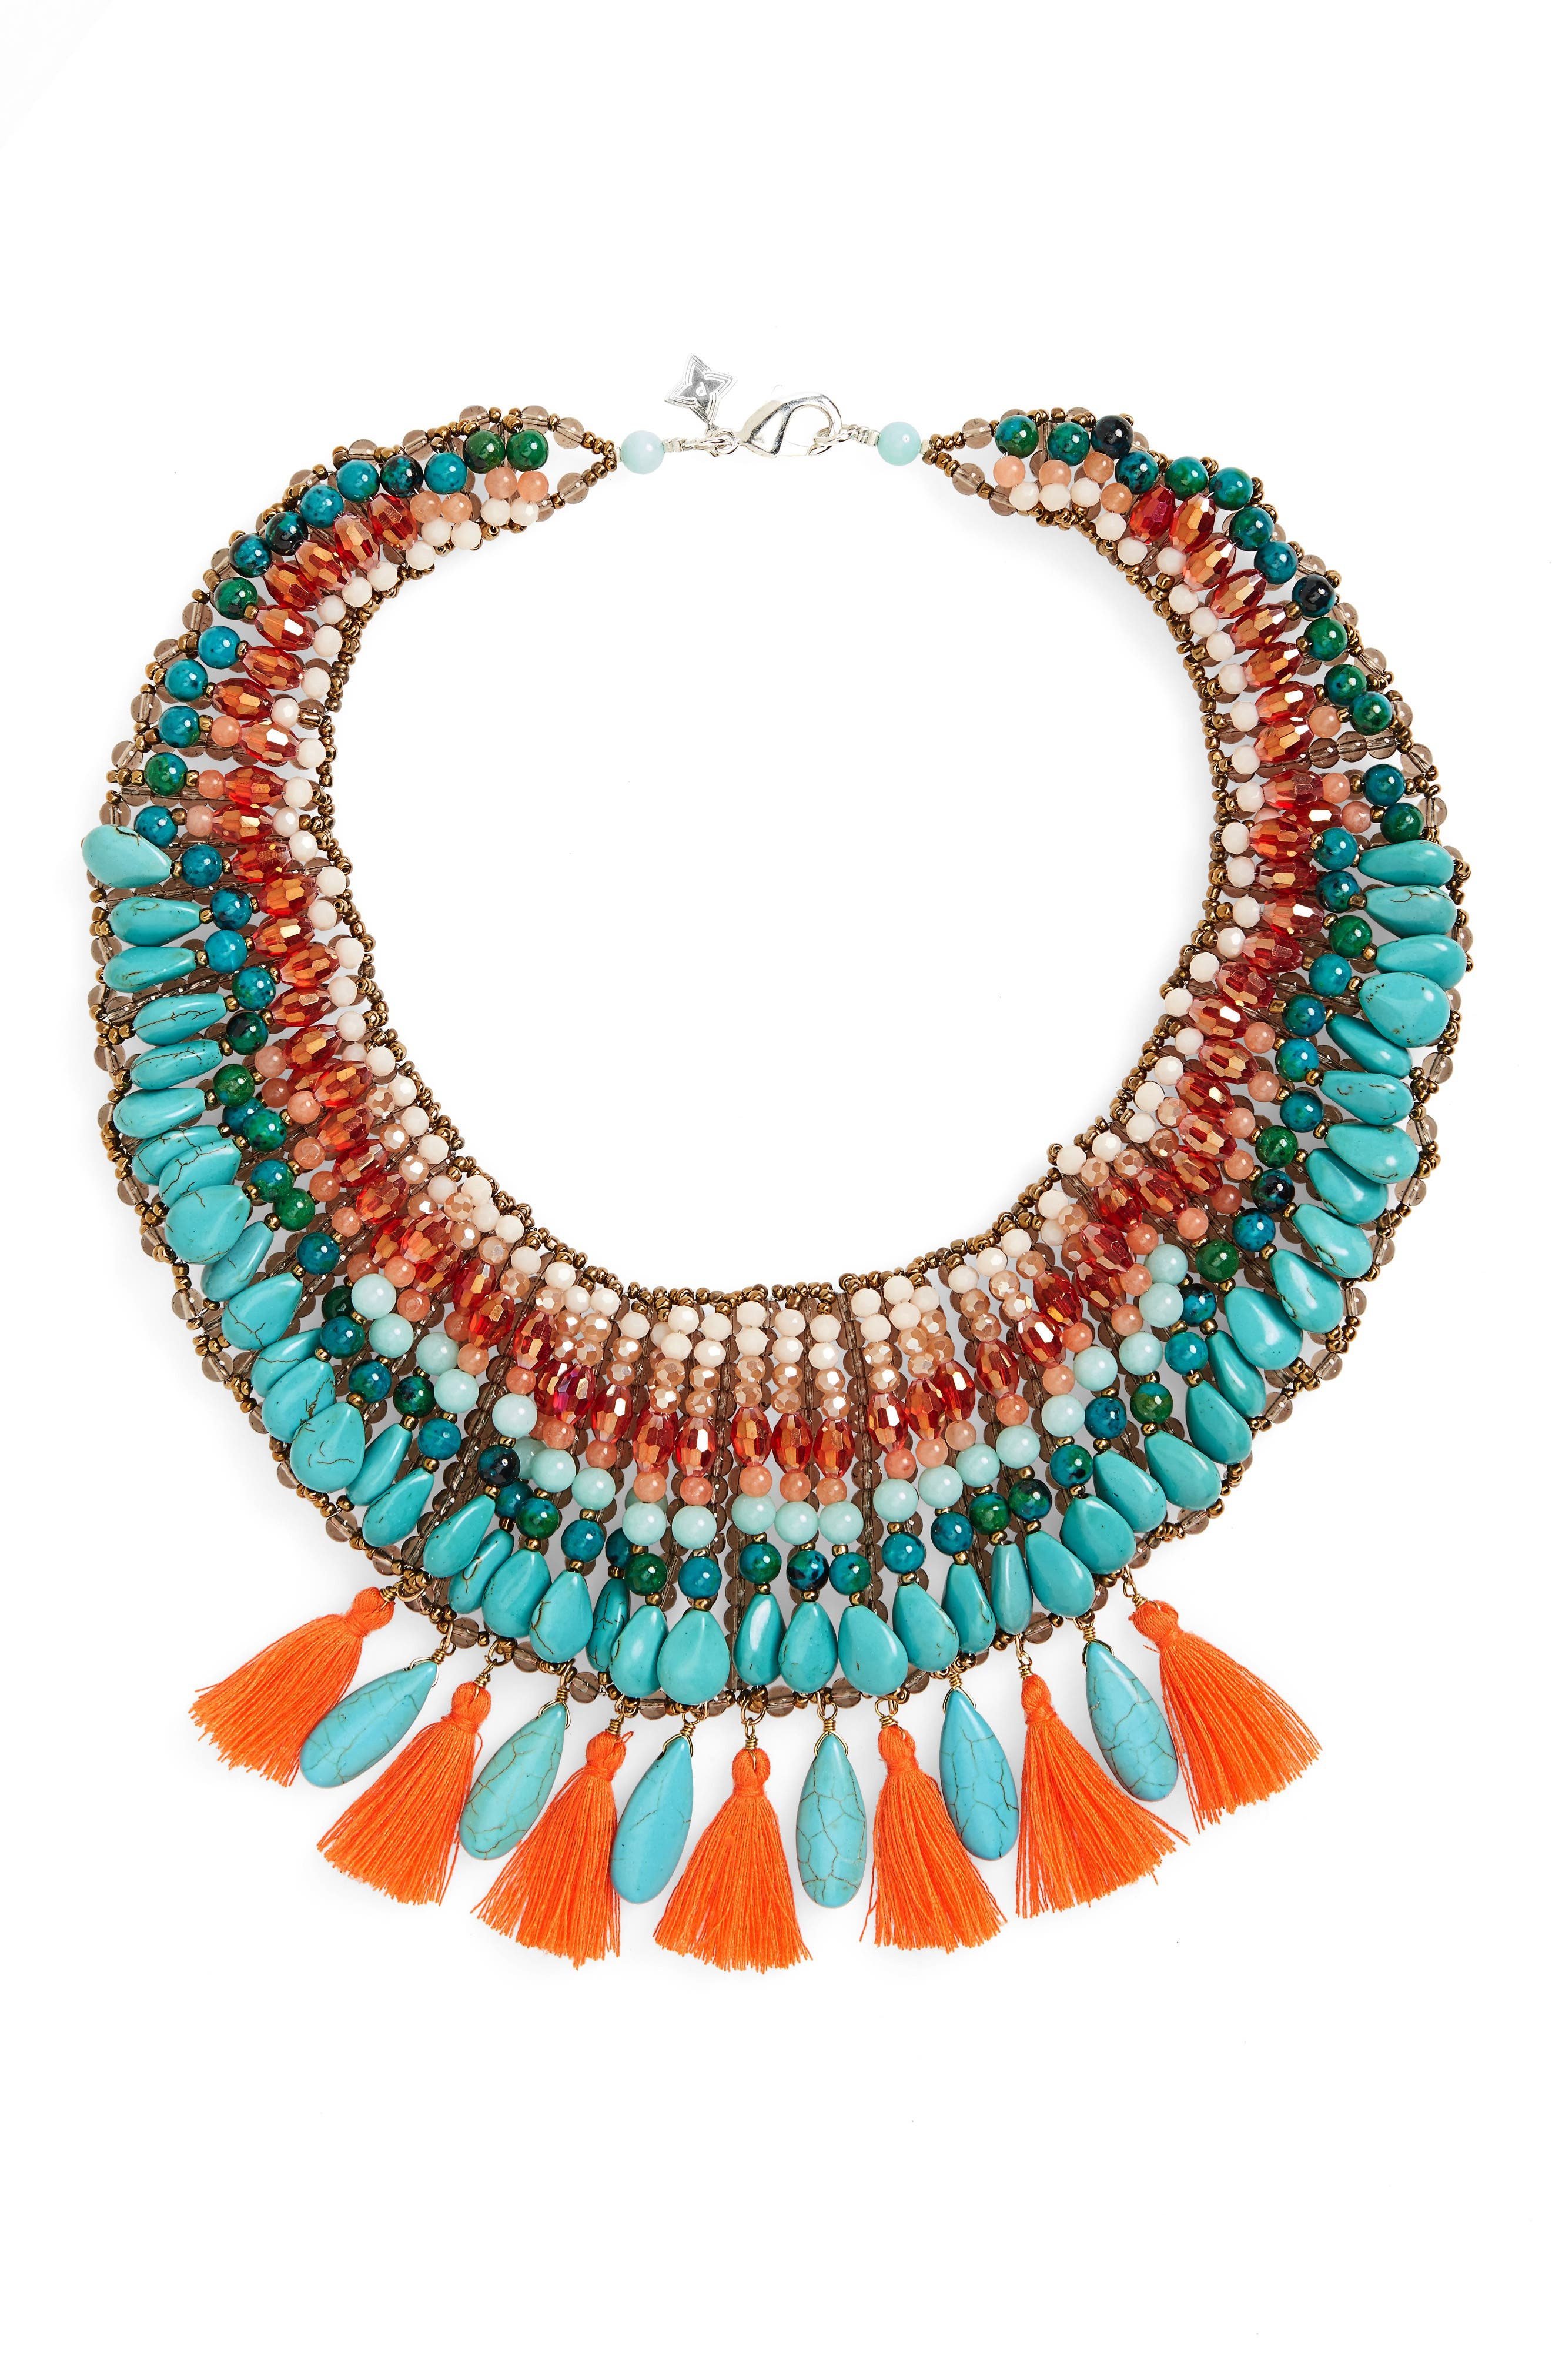 Tassel & Stone Statement Necklace,                             Main thumbnail 1, color,                             800